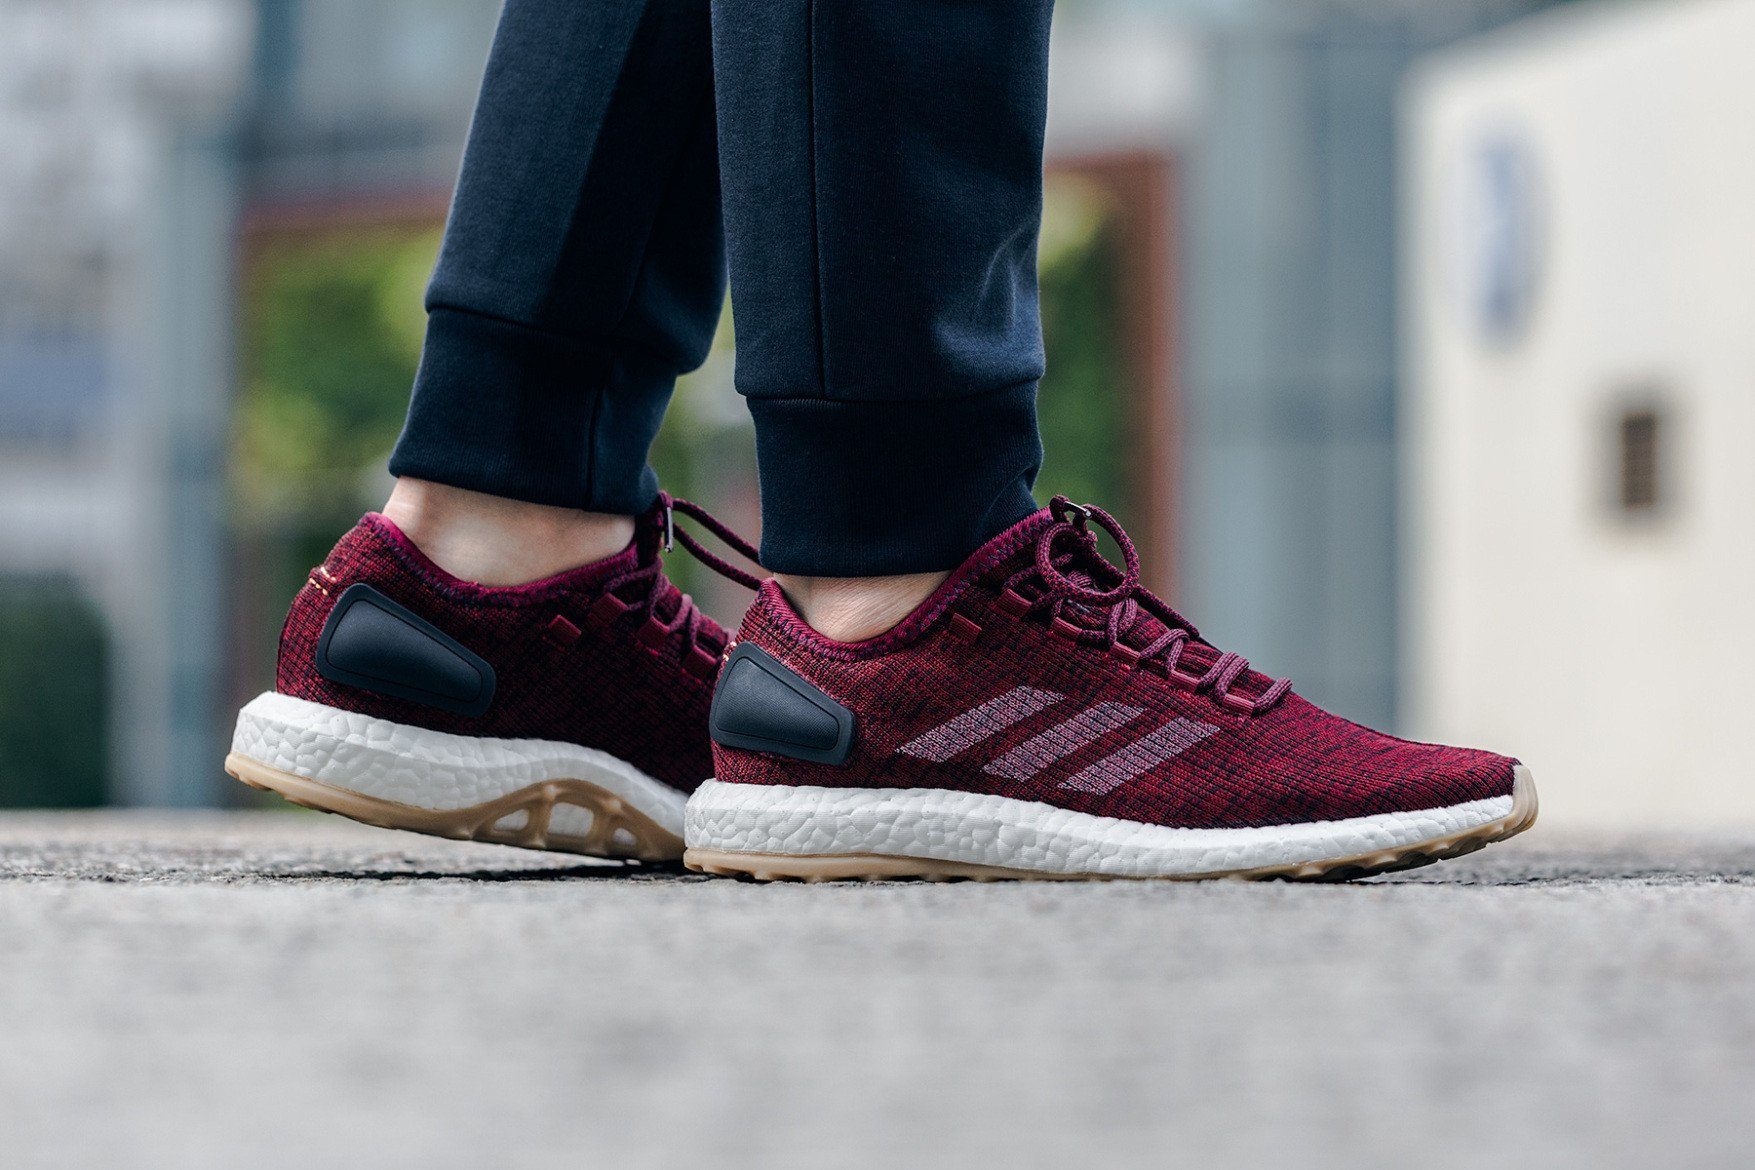 8357ef70f8f7 adidas Pure Boost Burgundy on sale for  88 w Free Shipping - Cop These Kicks